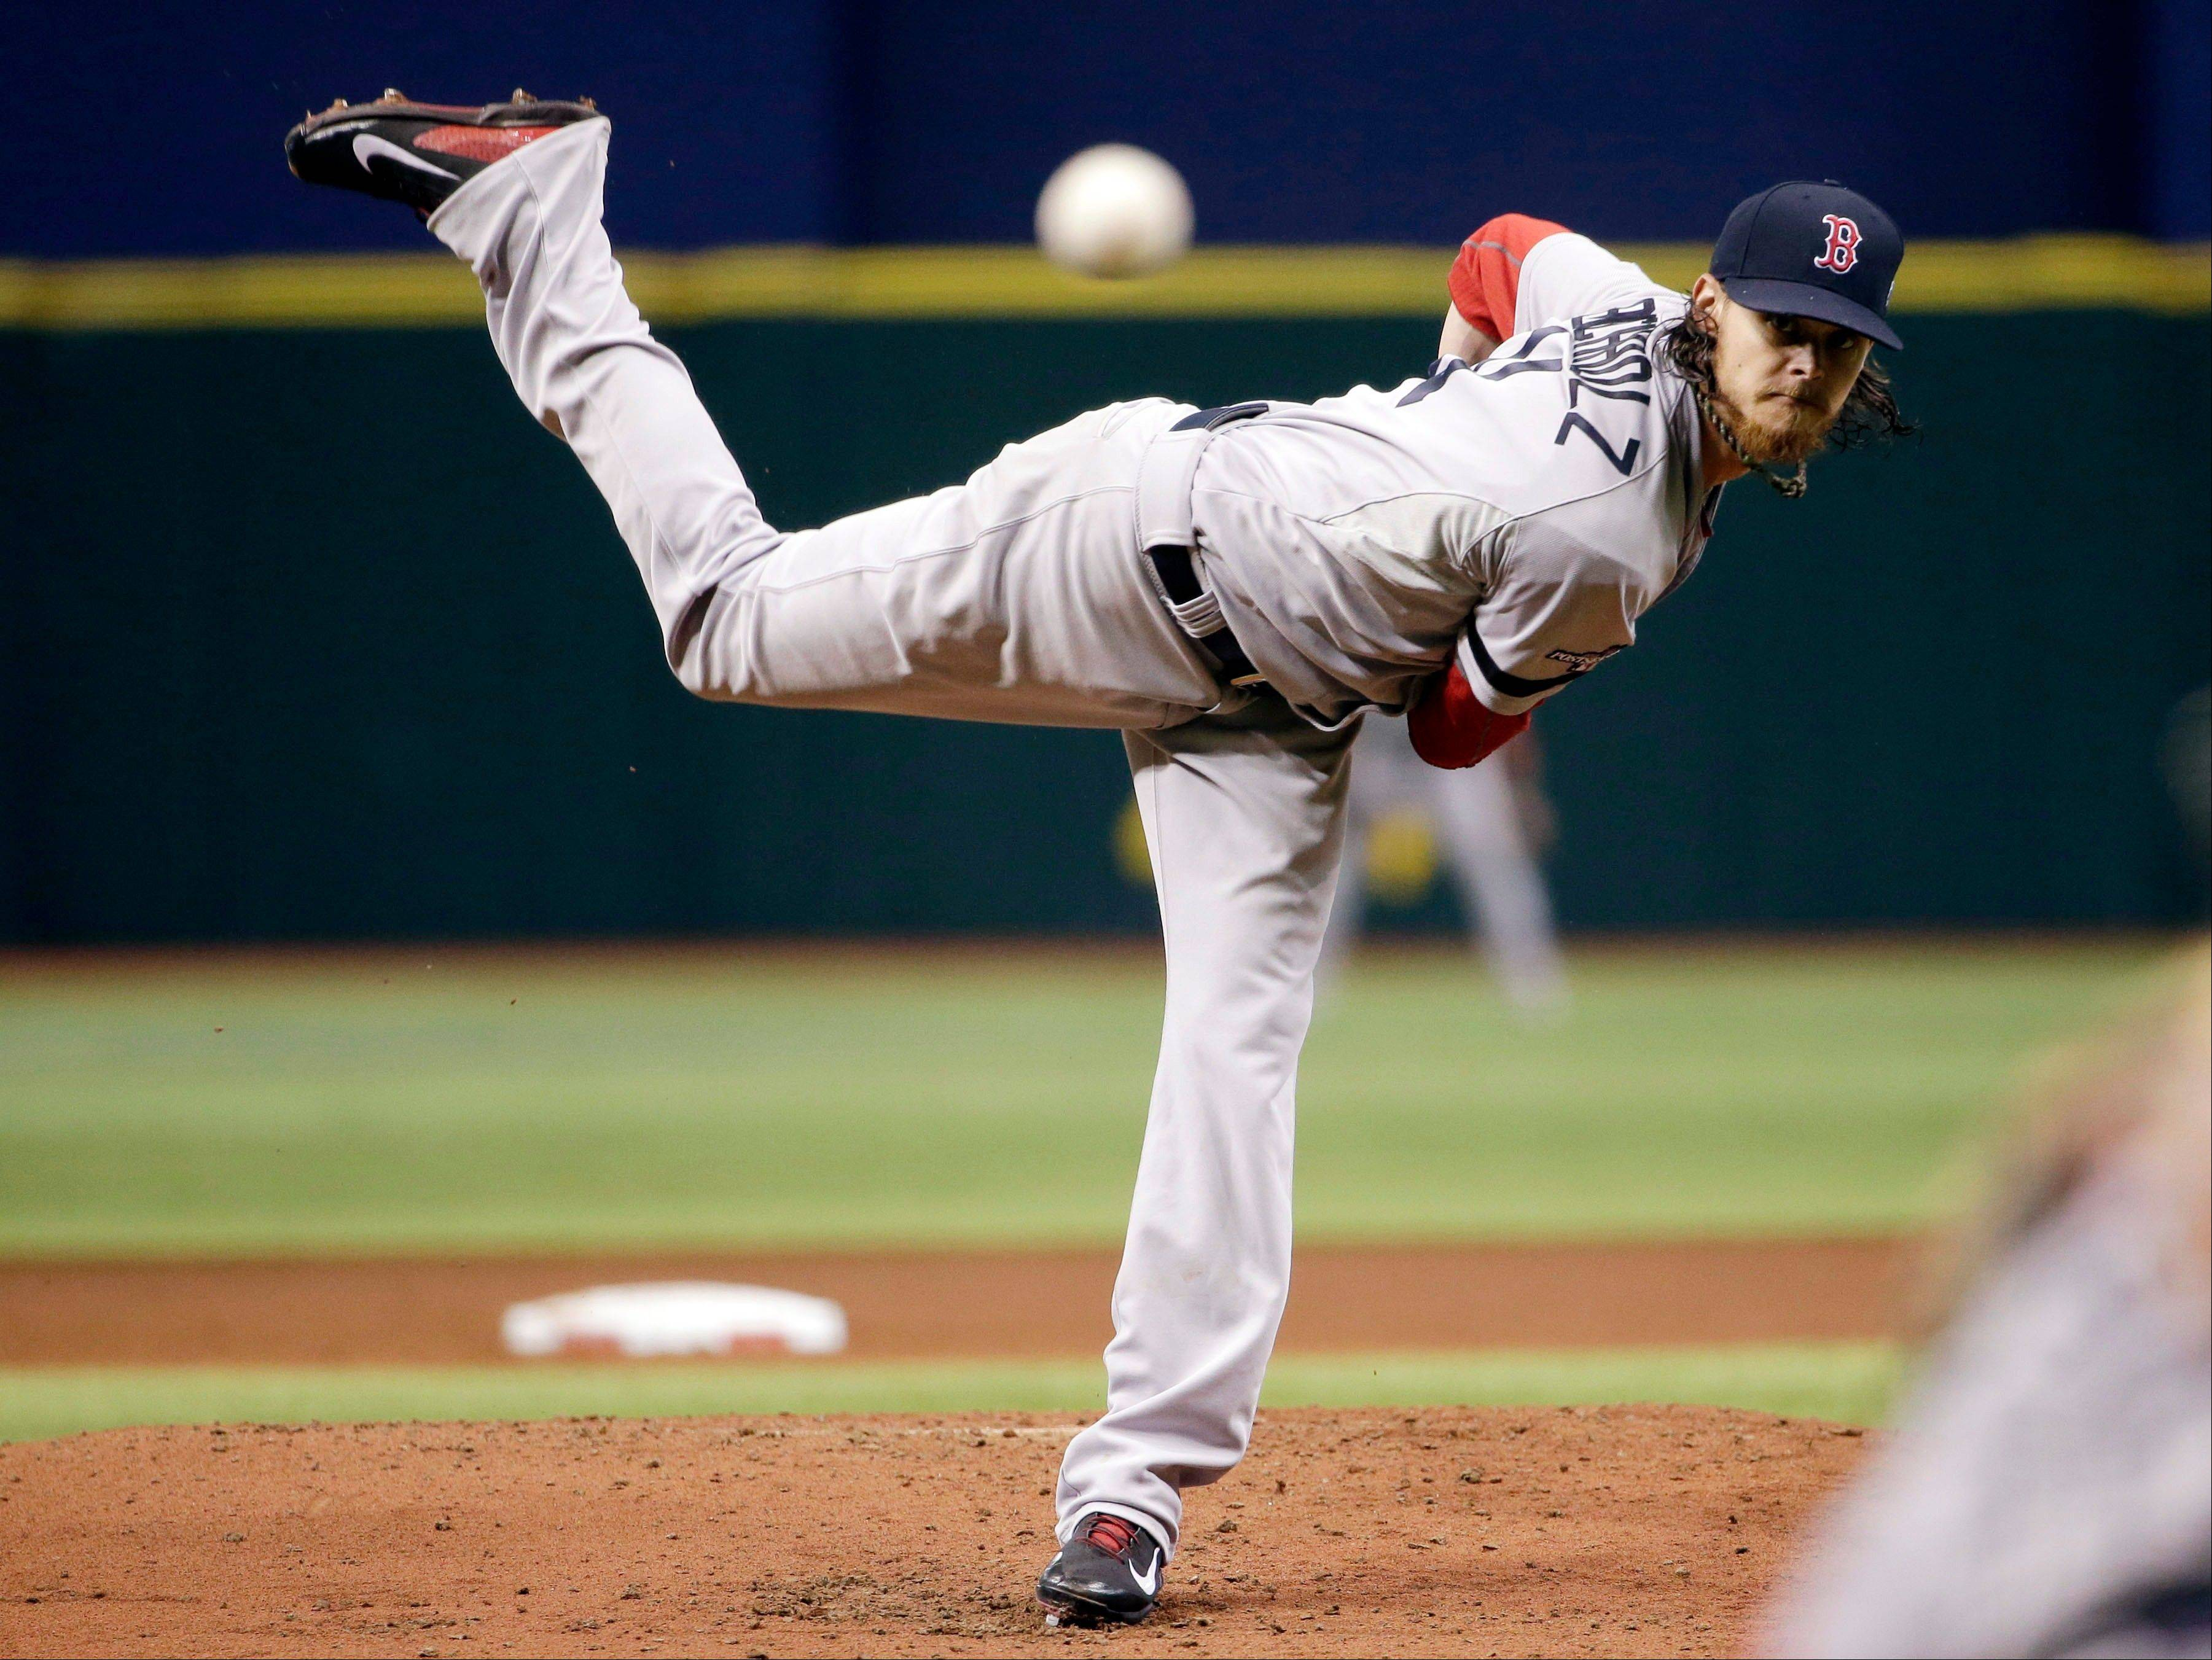 Boston Red Sox starting pitcher Clay Buchholz watches his pitch in the first inning Monday in Game 3 of an American League Division Series against the Tampa Bay Rays.